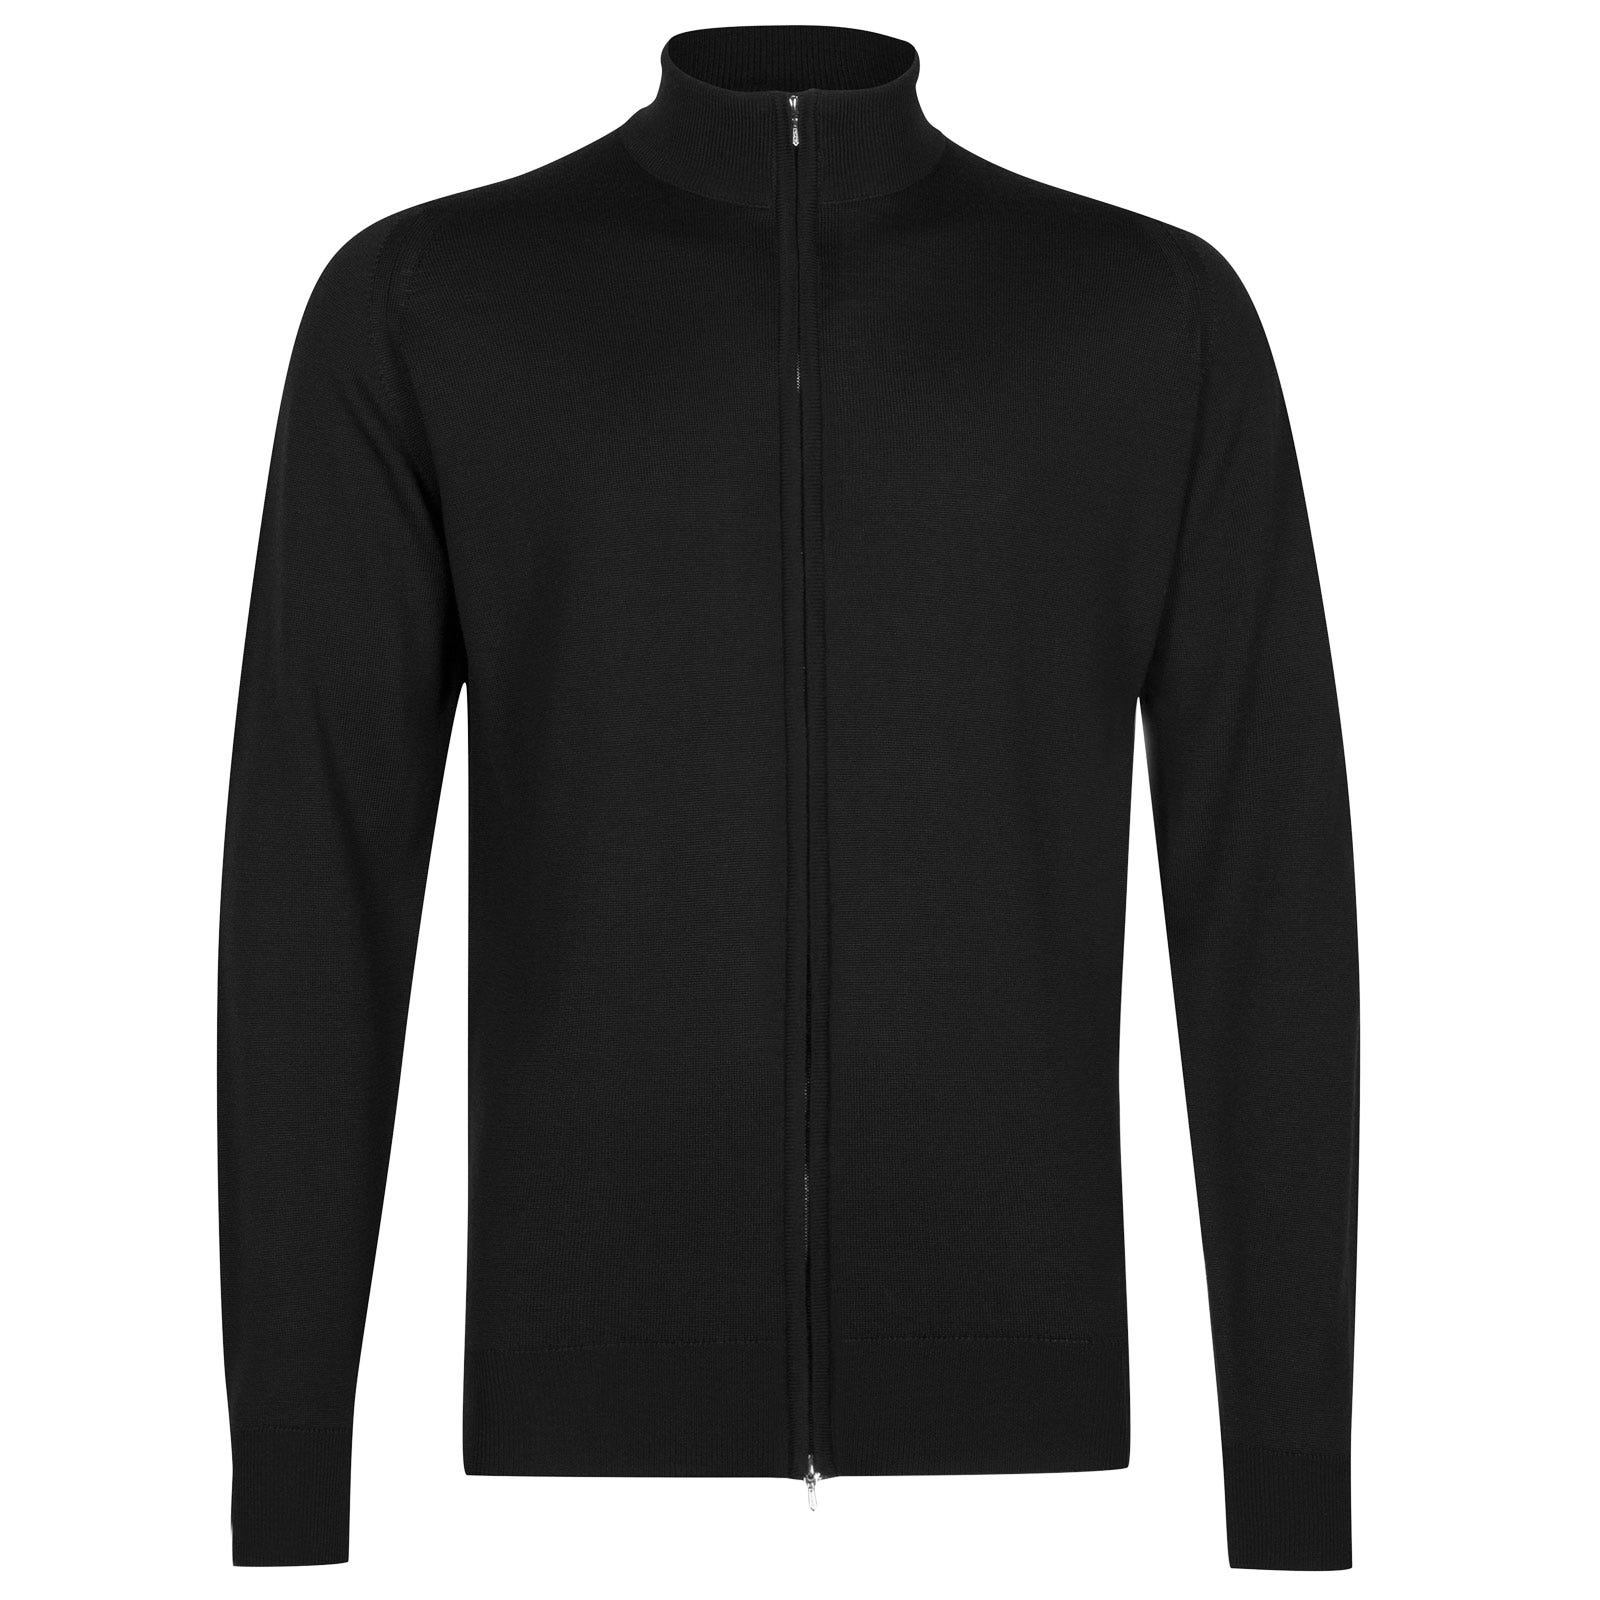 John Smedley Claygate Merino Wool Jacket in Black-XXL